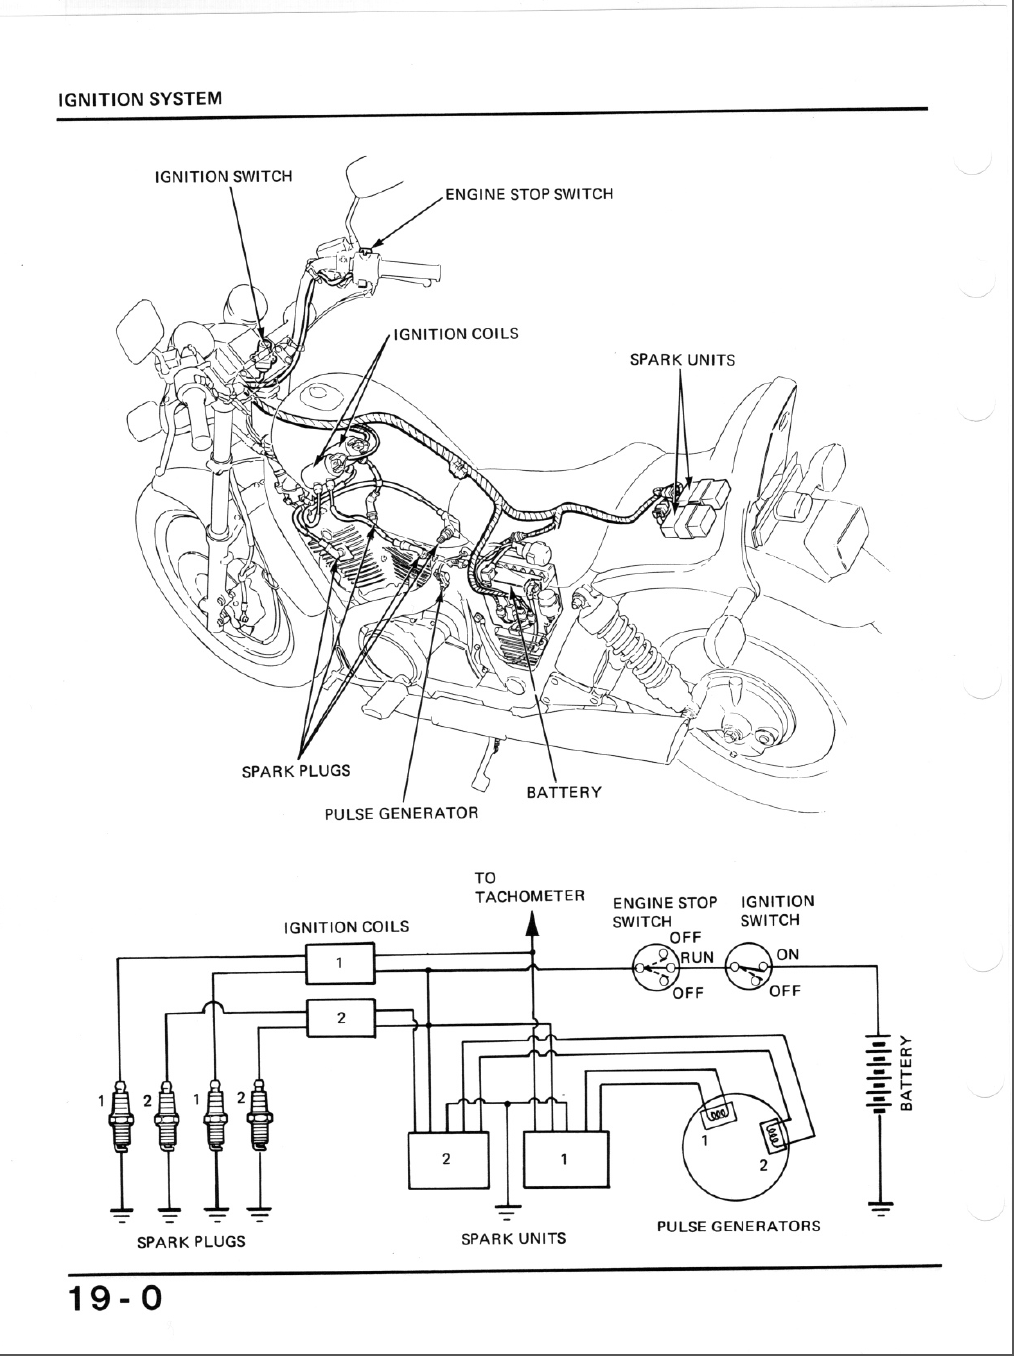 9267d1409799693 1984 honda shadow 700 ignition system 1984 honda shadow 700 Chinese ATV Wiring Diagrams at readyjetset.co